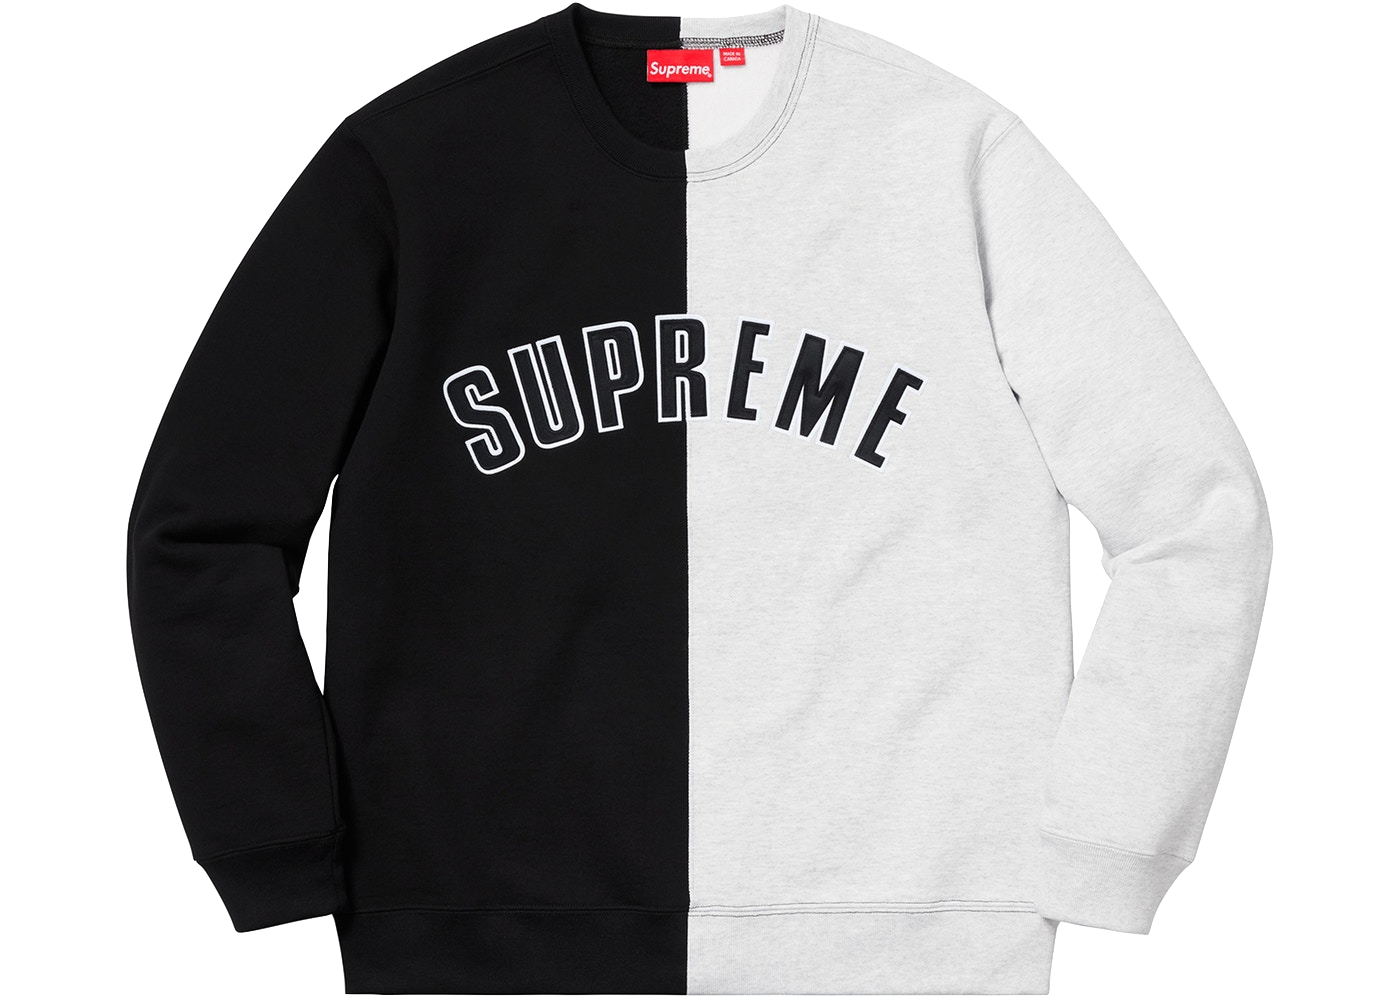 Supreme Split Crewneck Sweatshirt Black - Baza